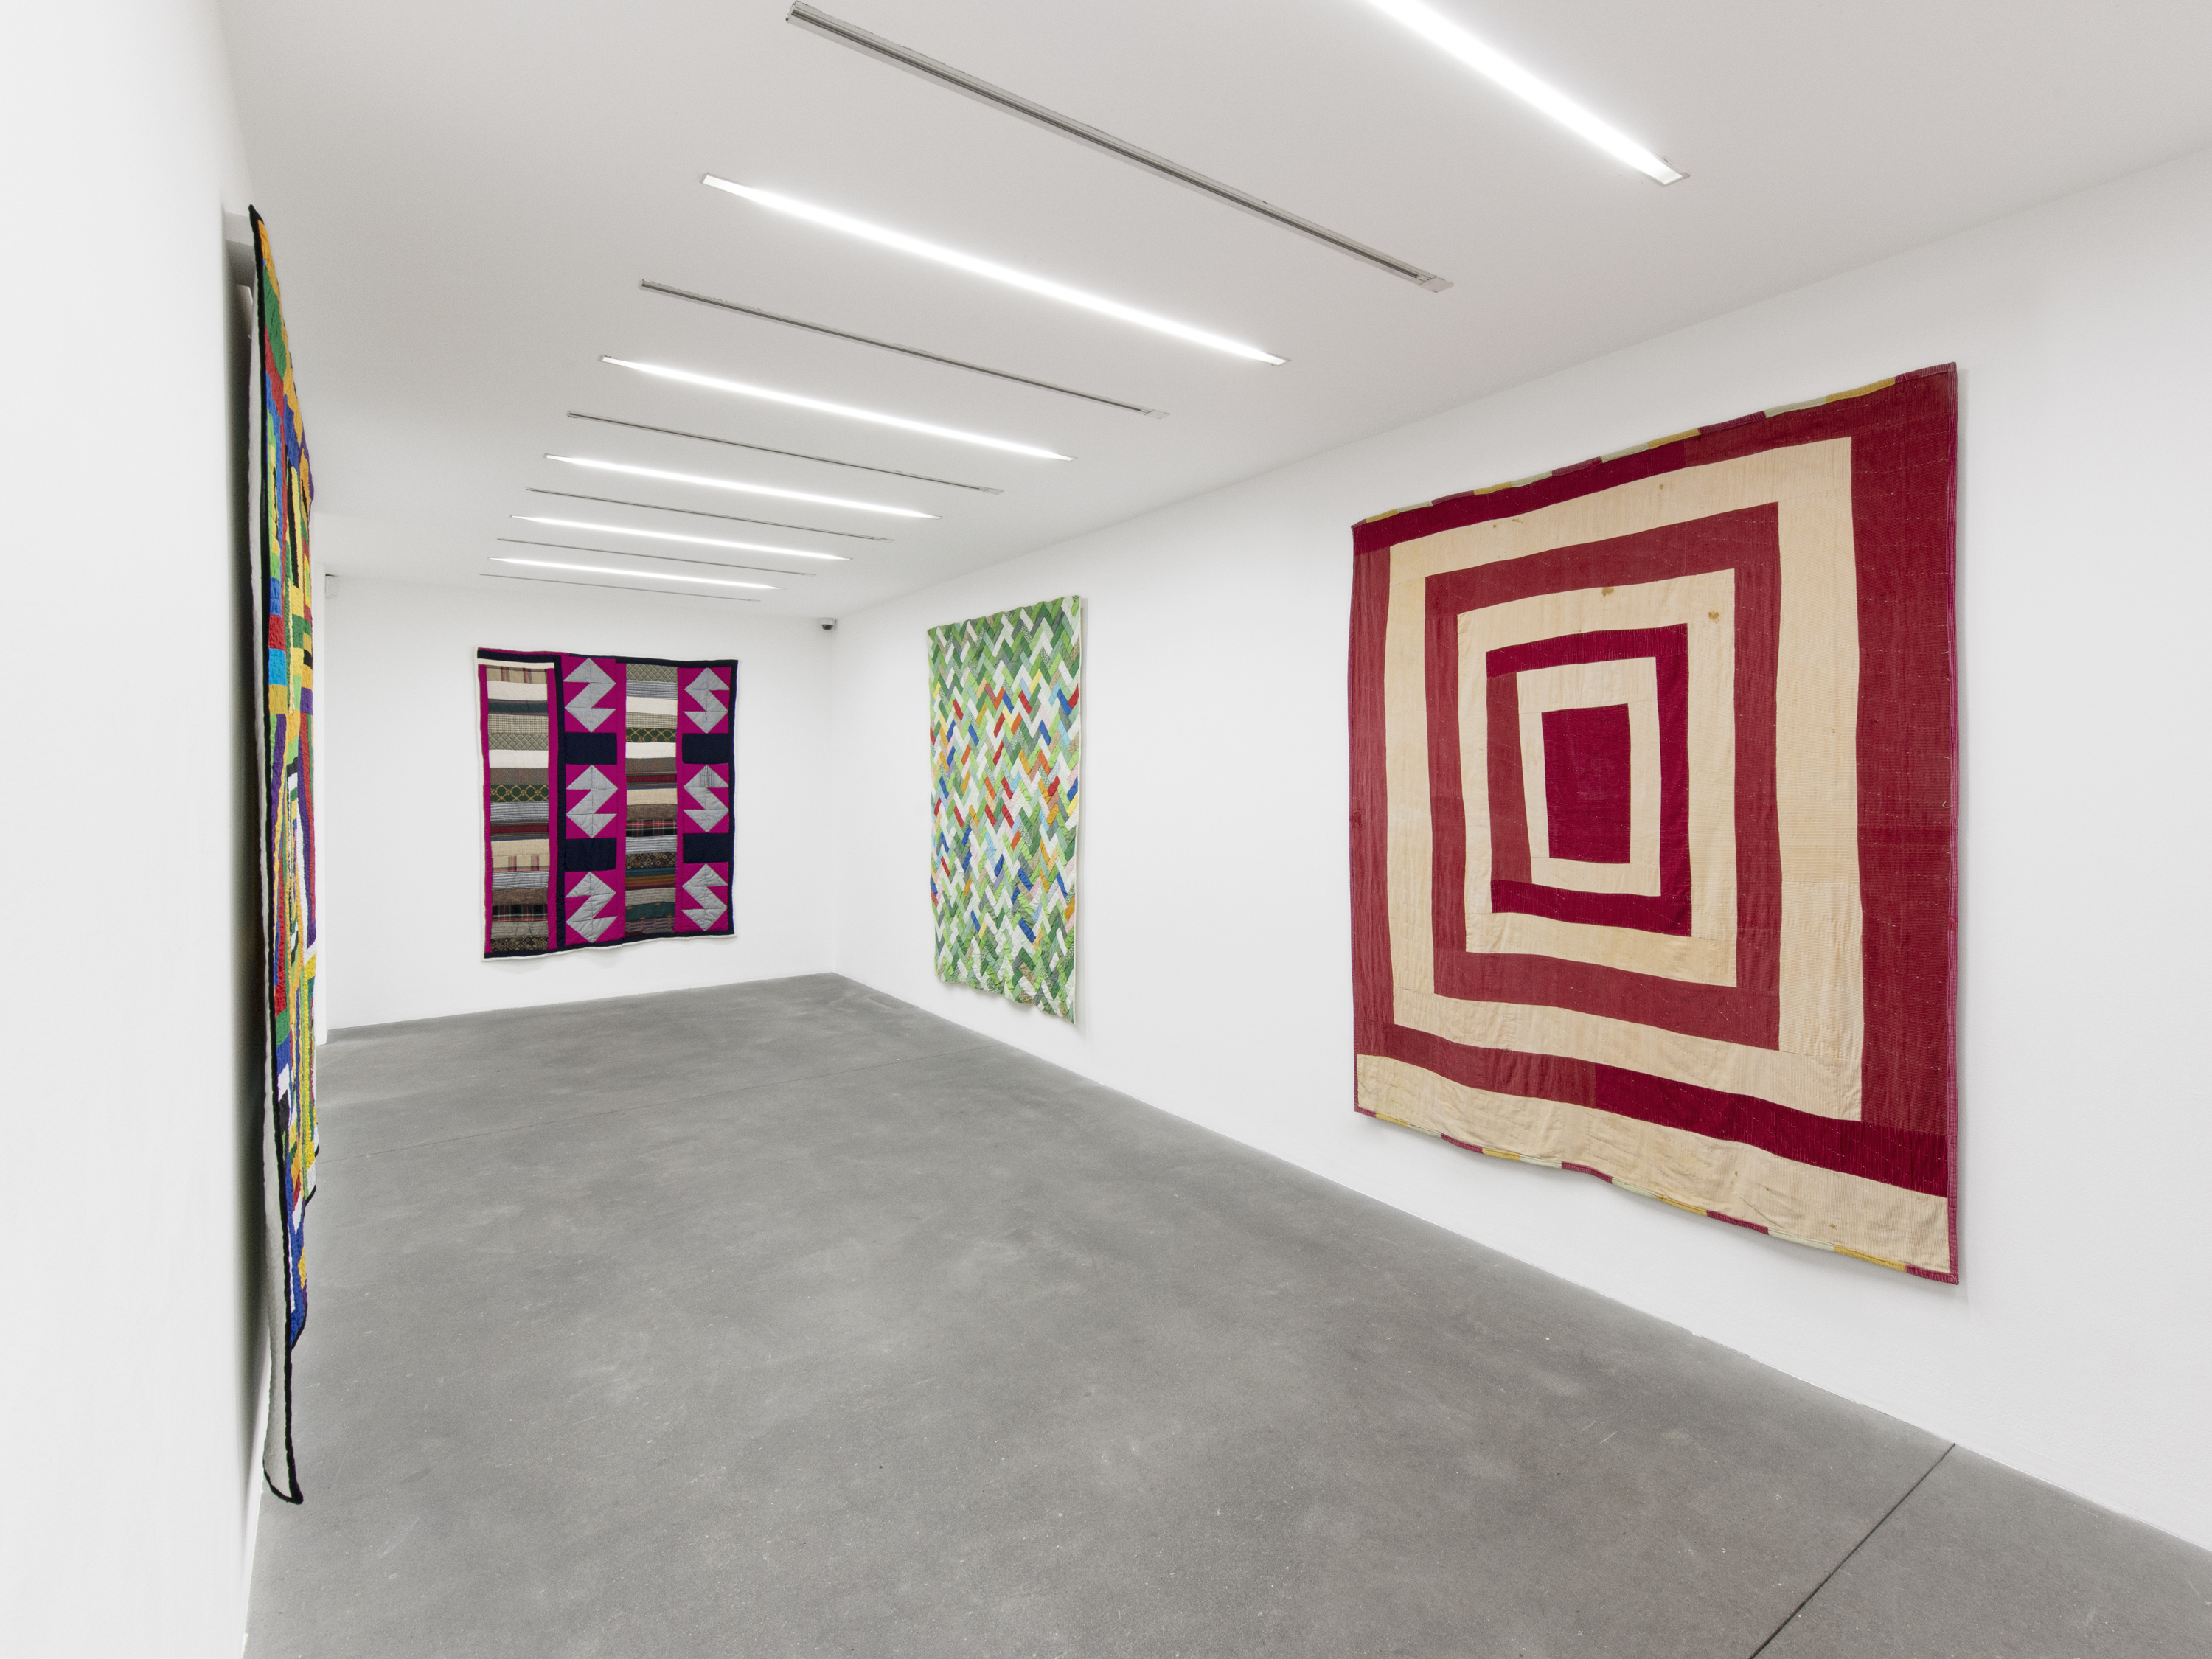 Installation View 3, THE GEE'S BEND QUILTMAKERS, Alison Jacques Gallery, 2021, All images courtesy of Alison Jacques Gallery